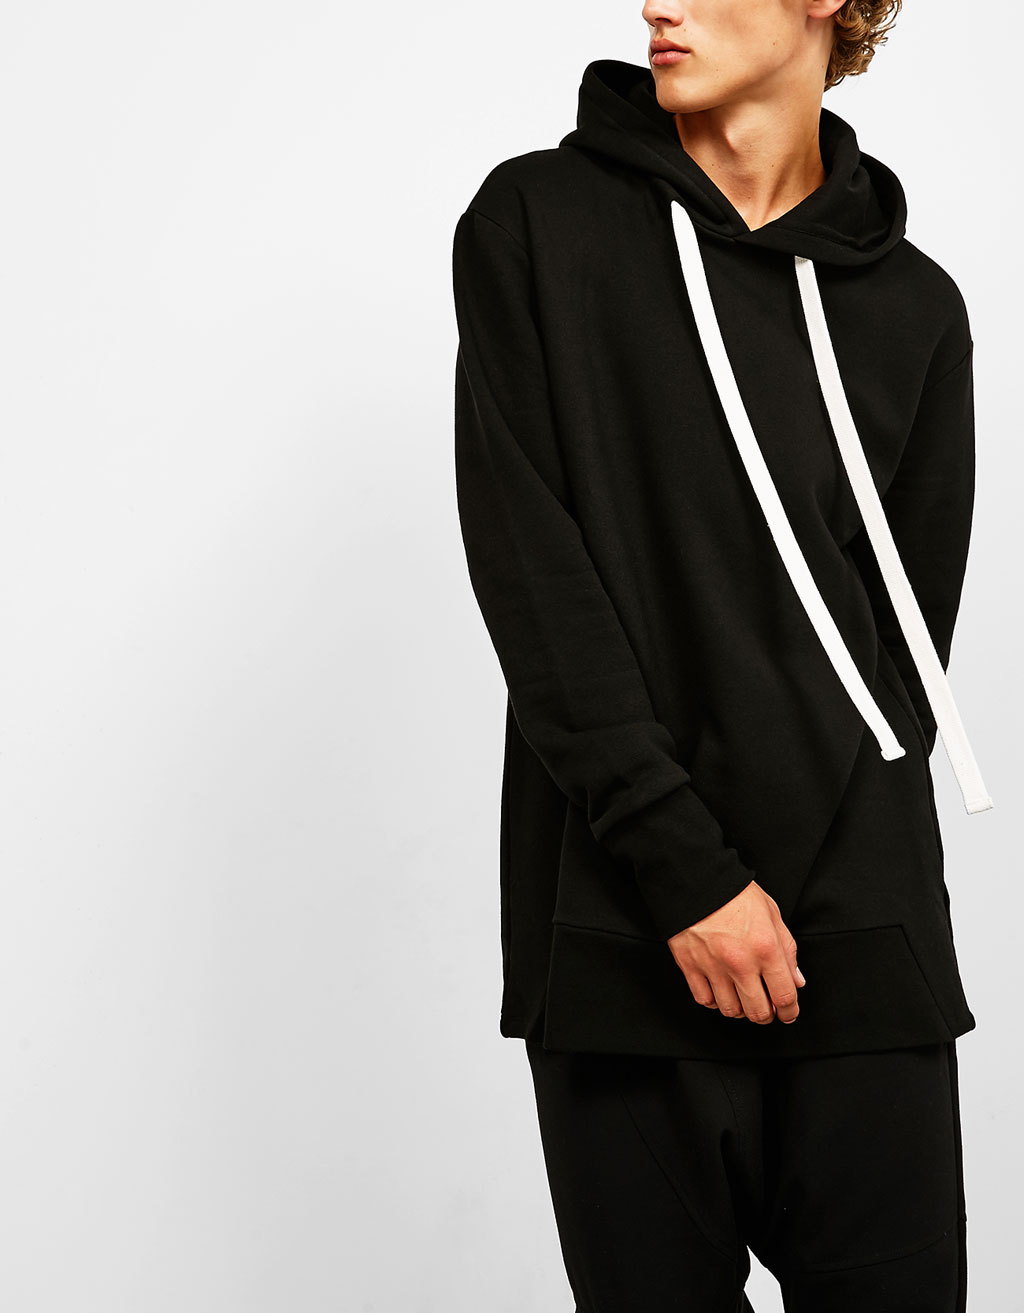 Sweatshirt with hood and white drawstring